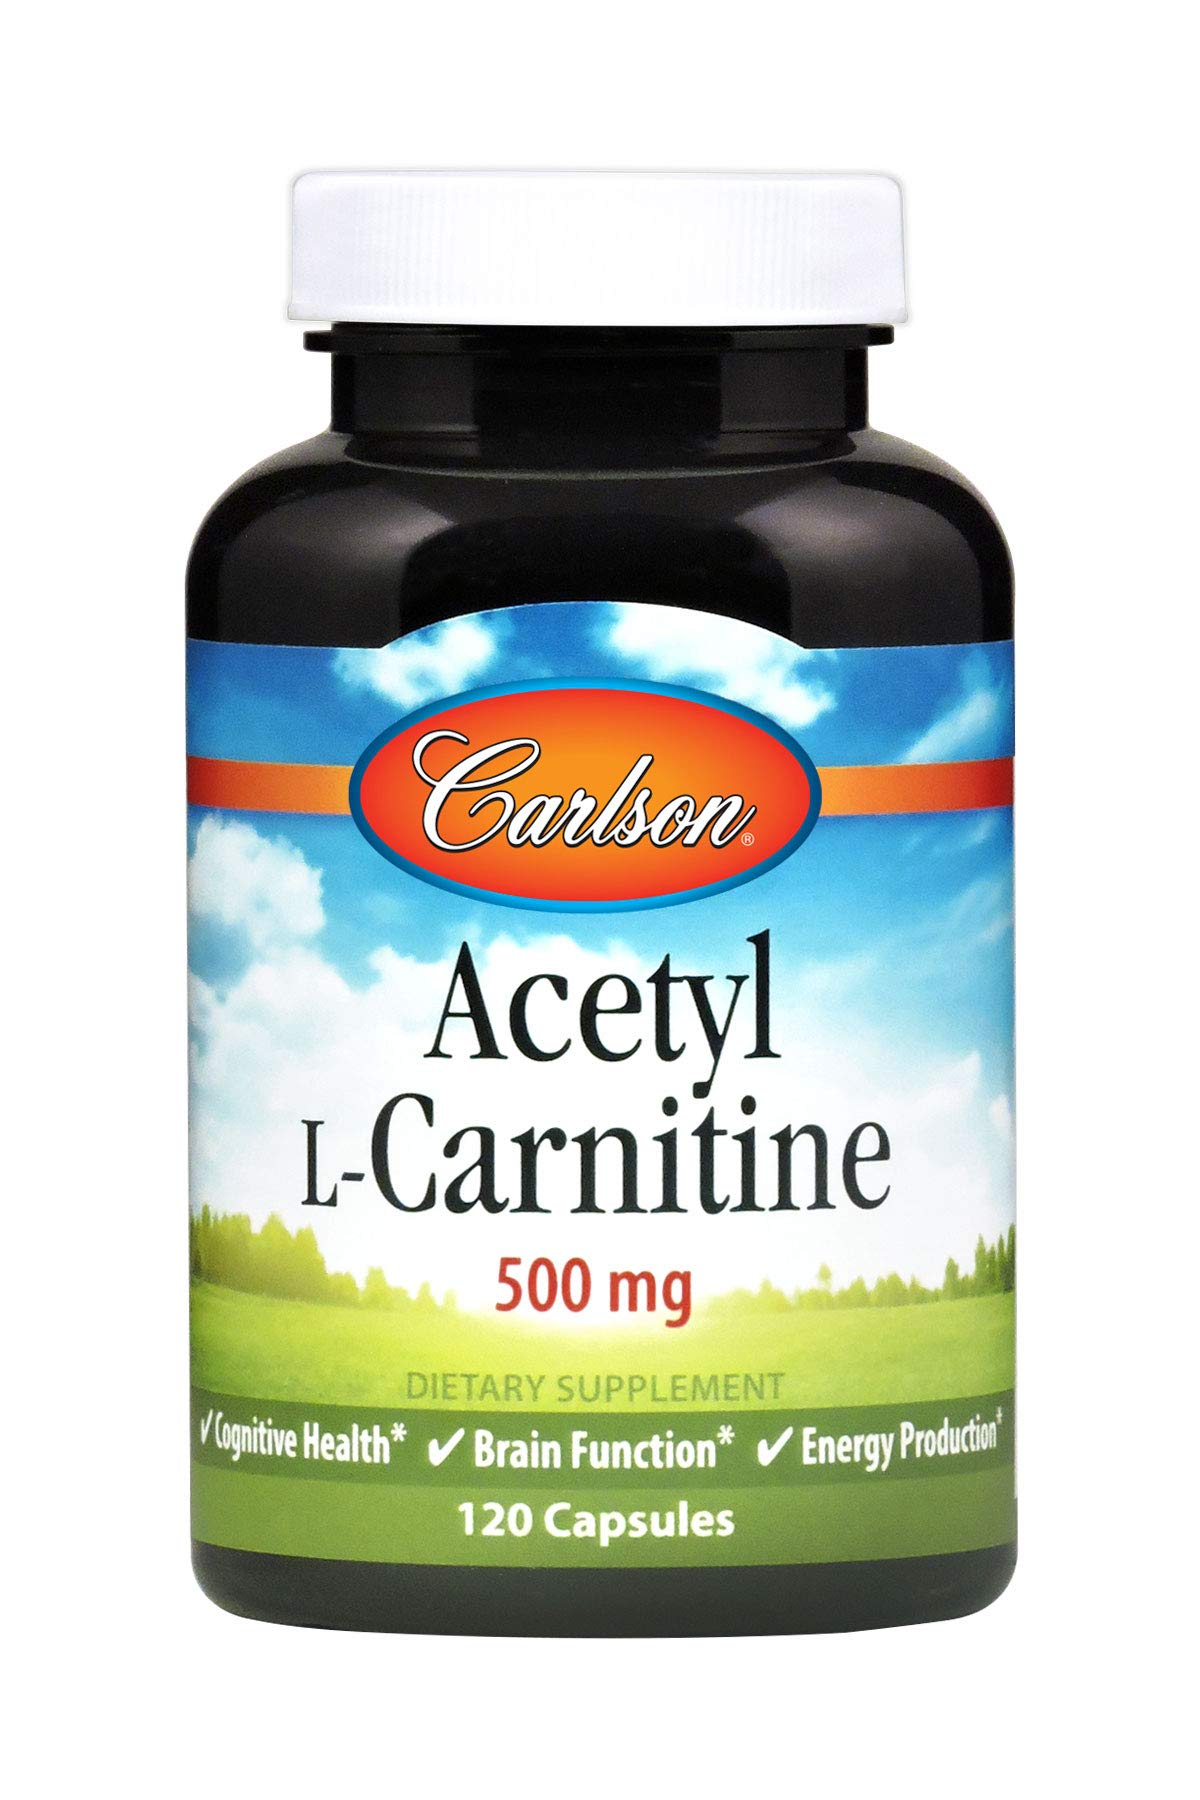 Carlson - Acetyl L-Carnitine, 500 mg, Cognitive Health, Brain Function & Energy Production, 120 Capsules